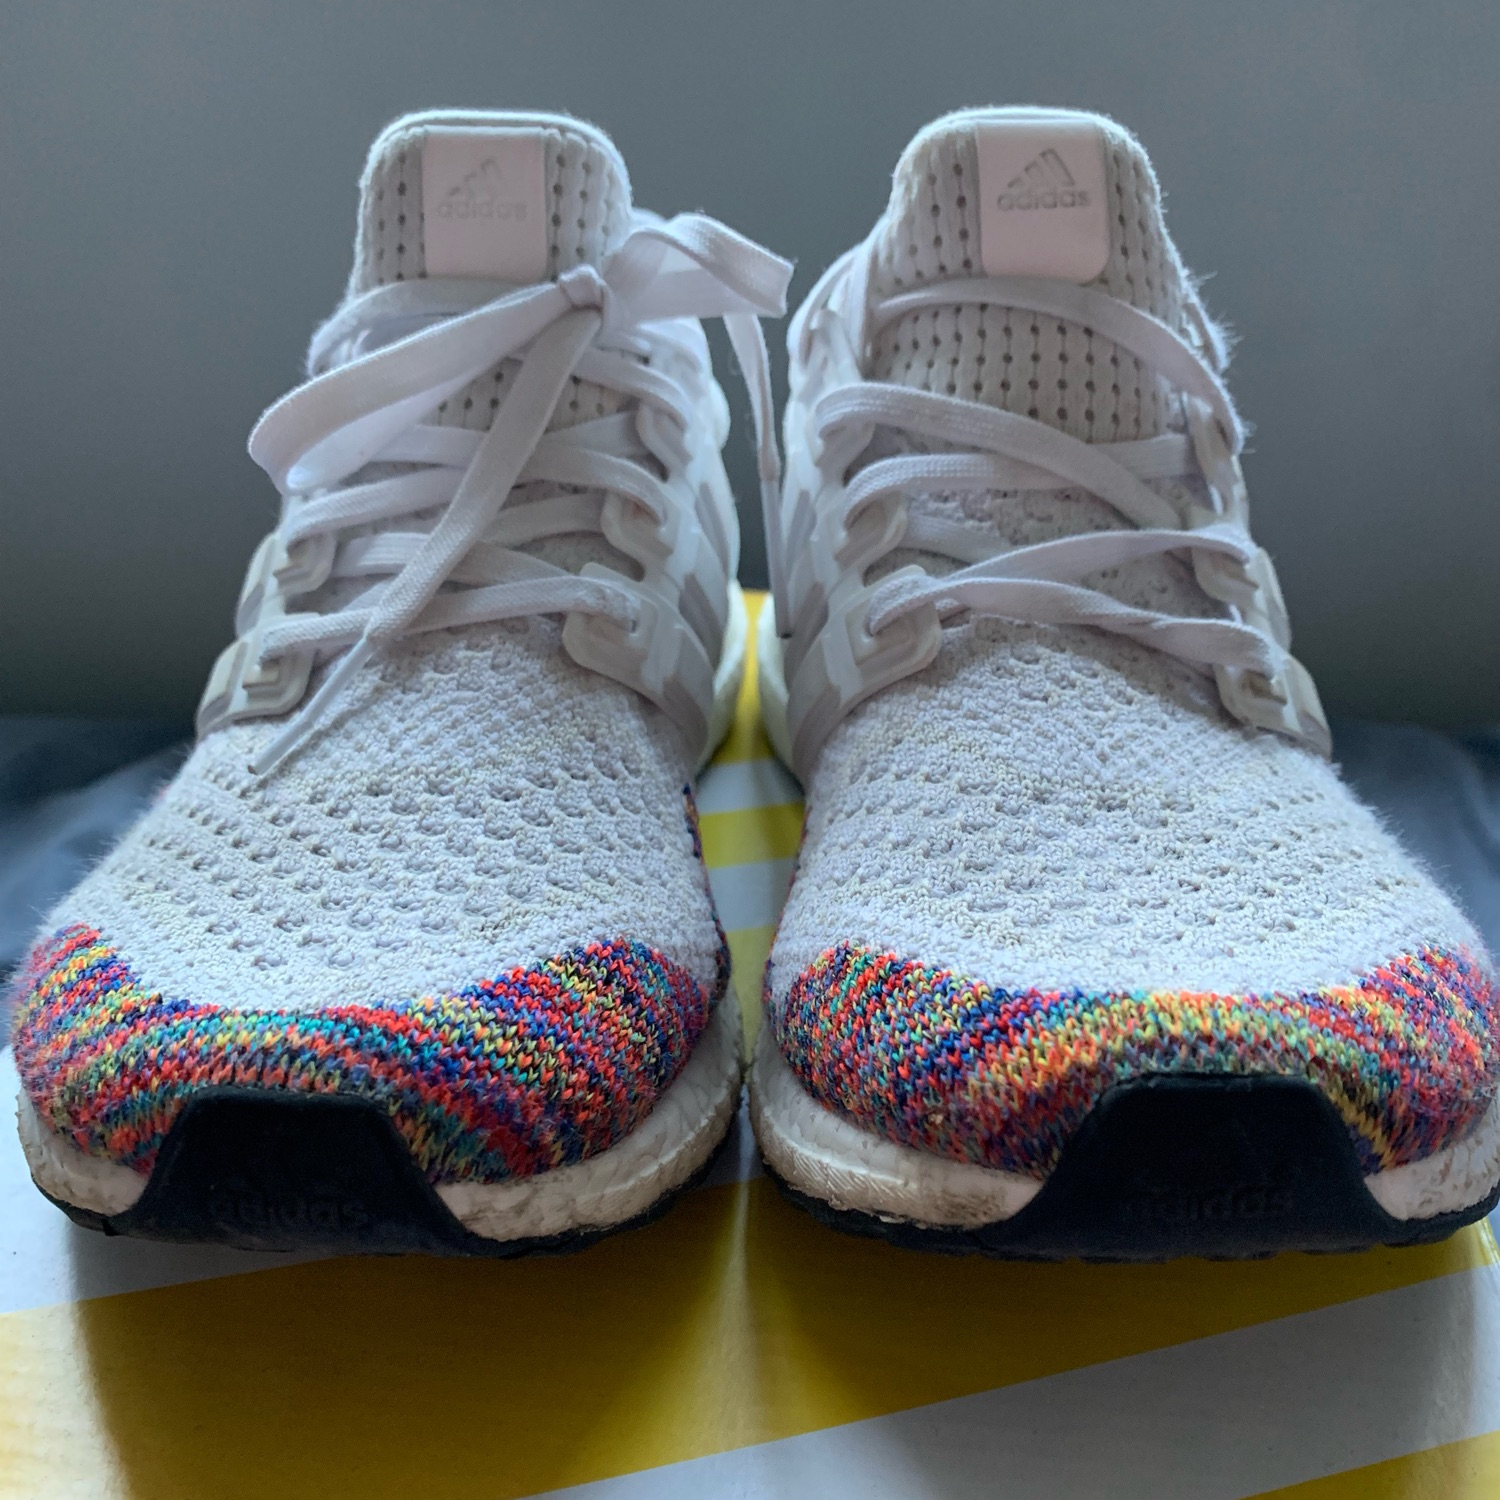 "ADIDAS ULTRA BOOST MID ""MULTI COLOR"" $110.00 